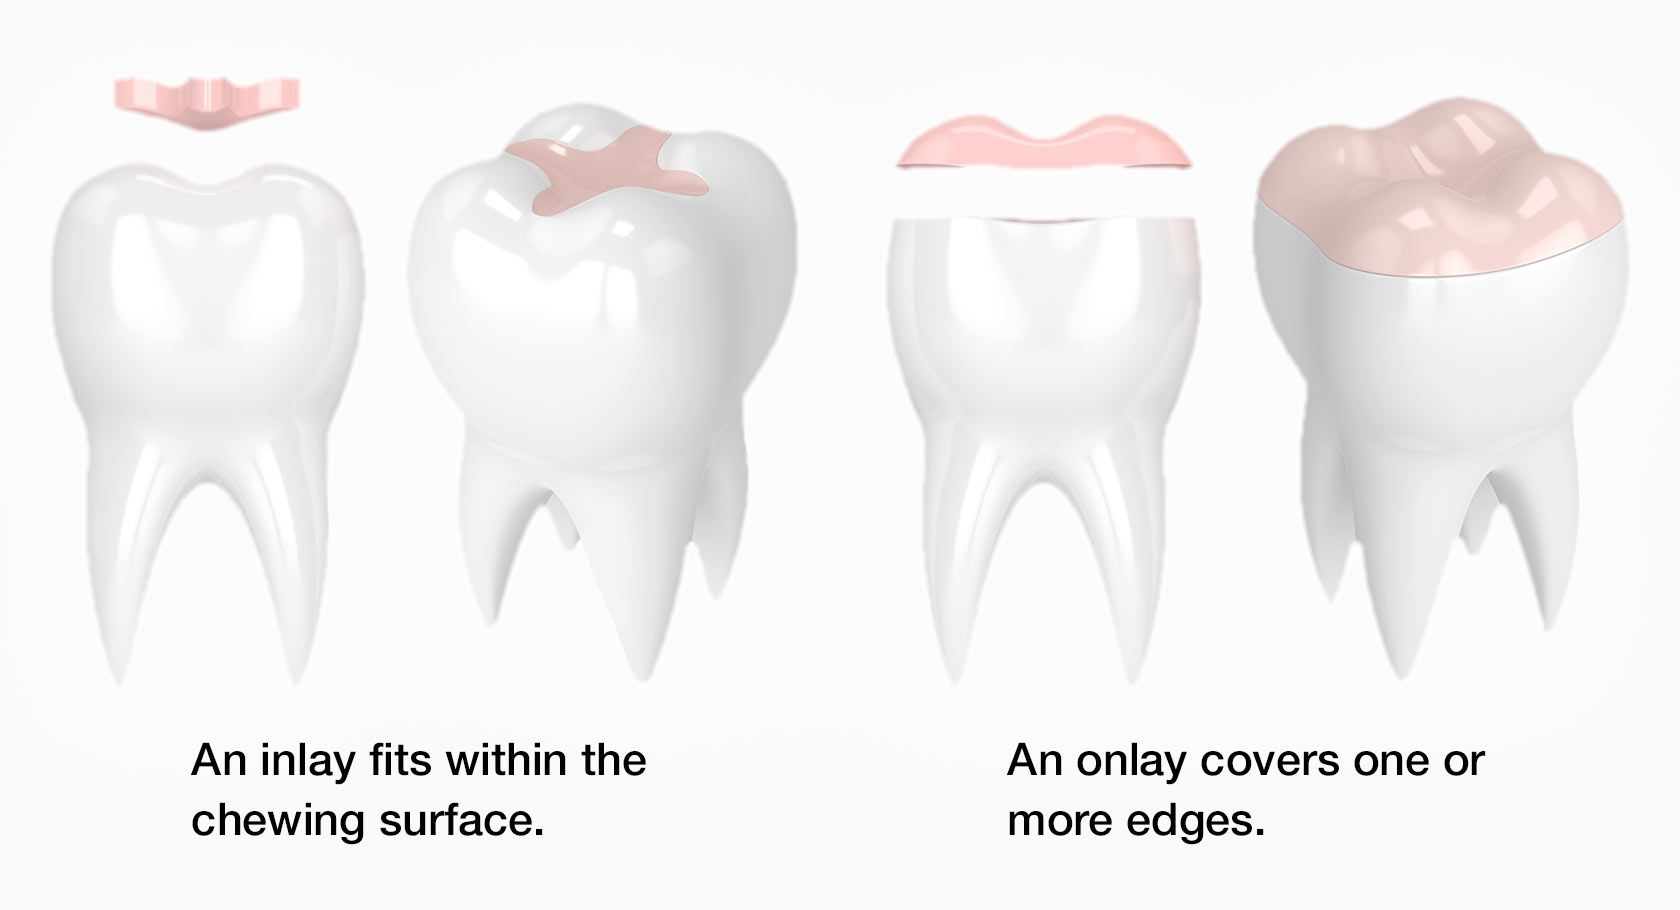 A Guide to Onlays and Inlays - Dental Guide